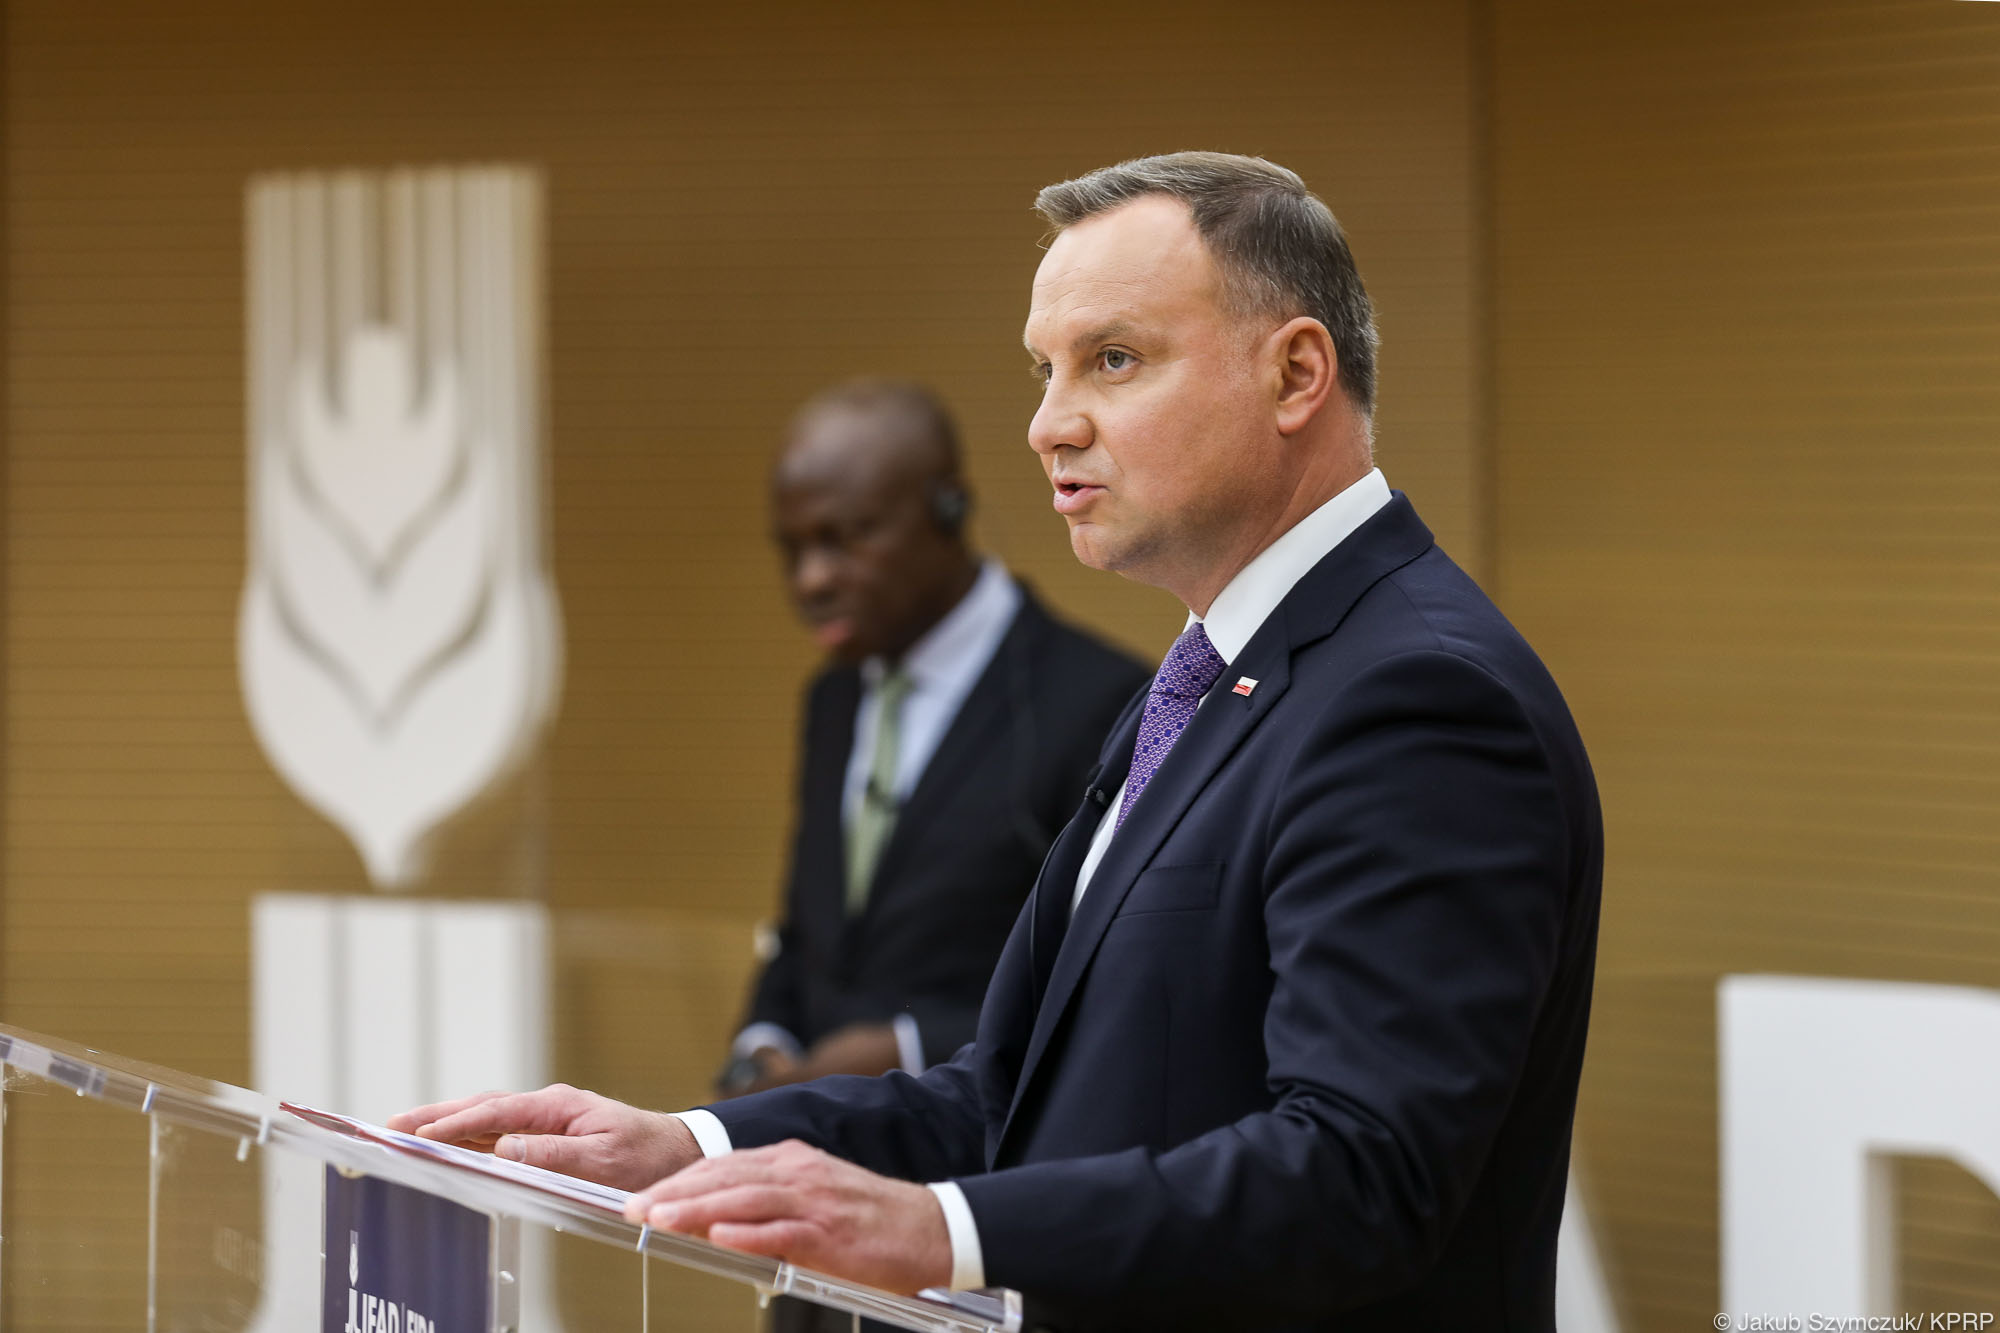 WI Daily News – Polish and Italian presidents discussed EU's economy and situation in Belarus